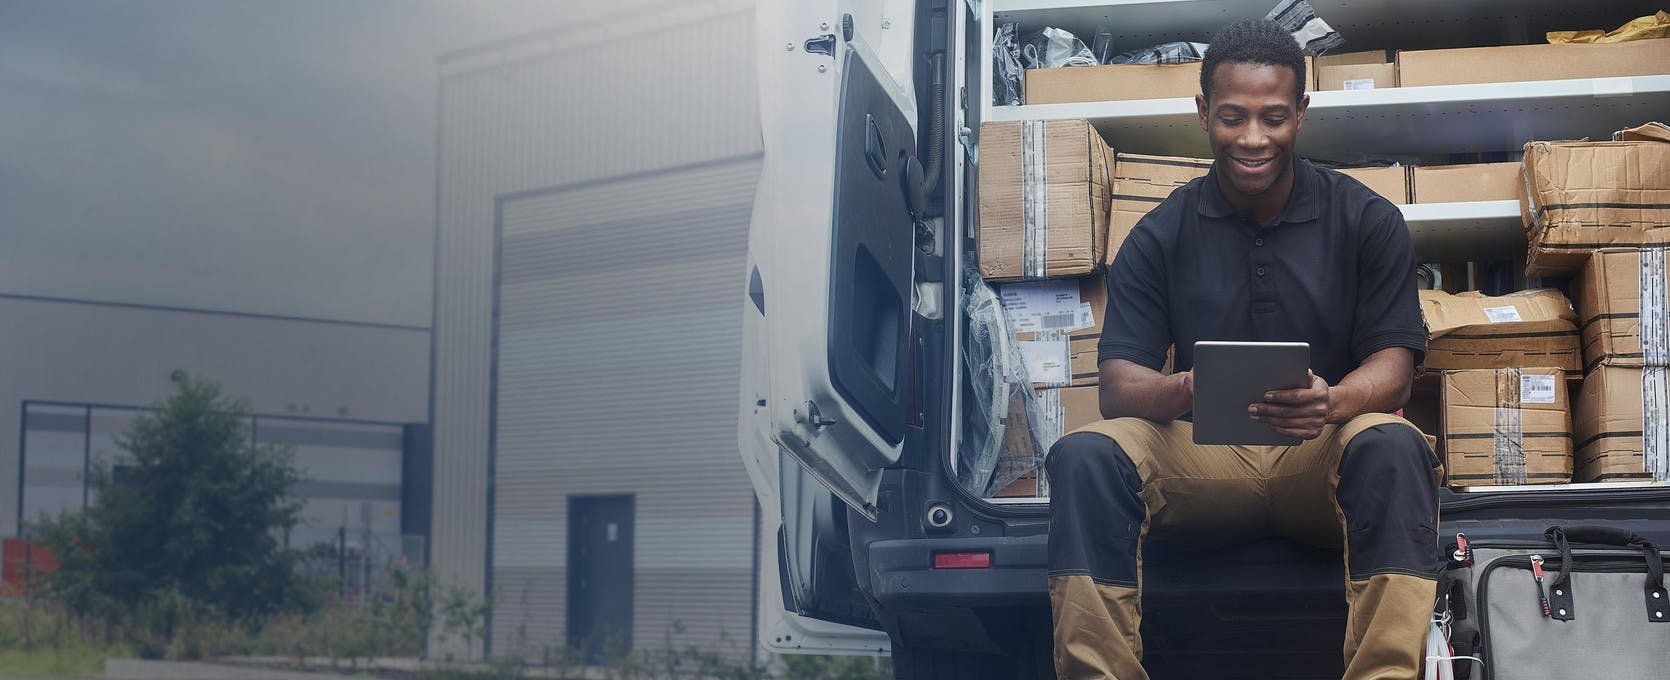 Delivery man and truck